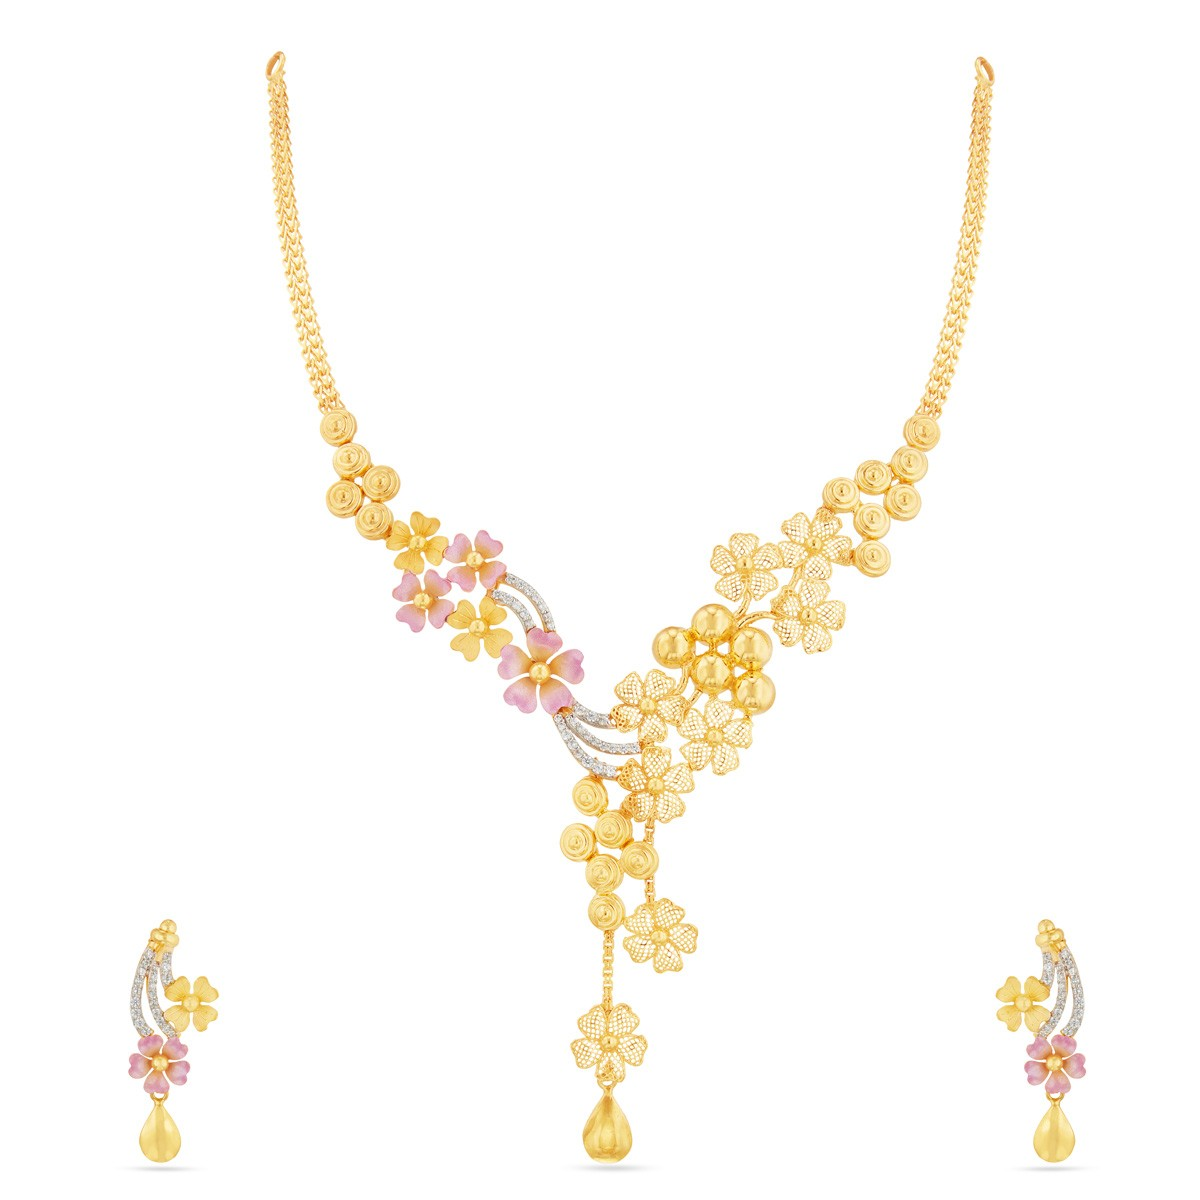 necklace gold grams the pin enquiries use following price link light weight